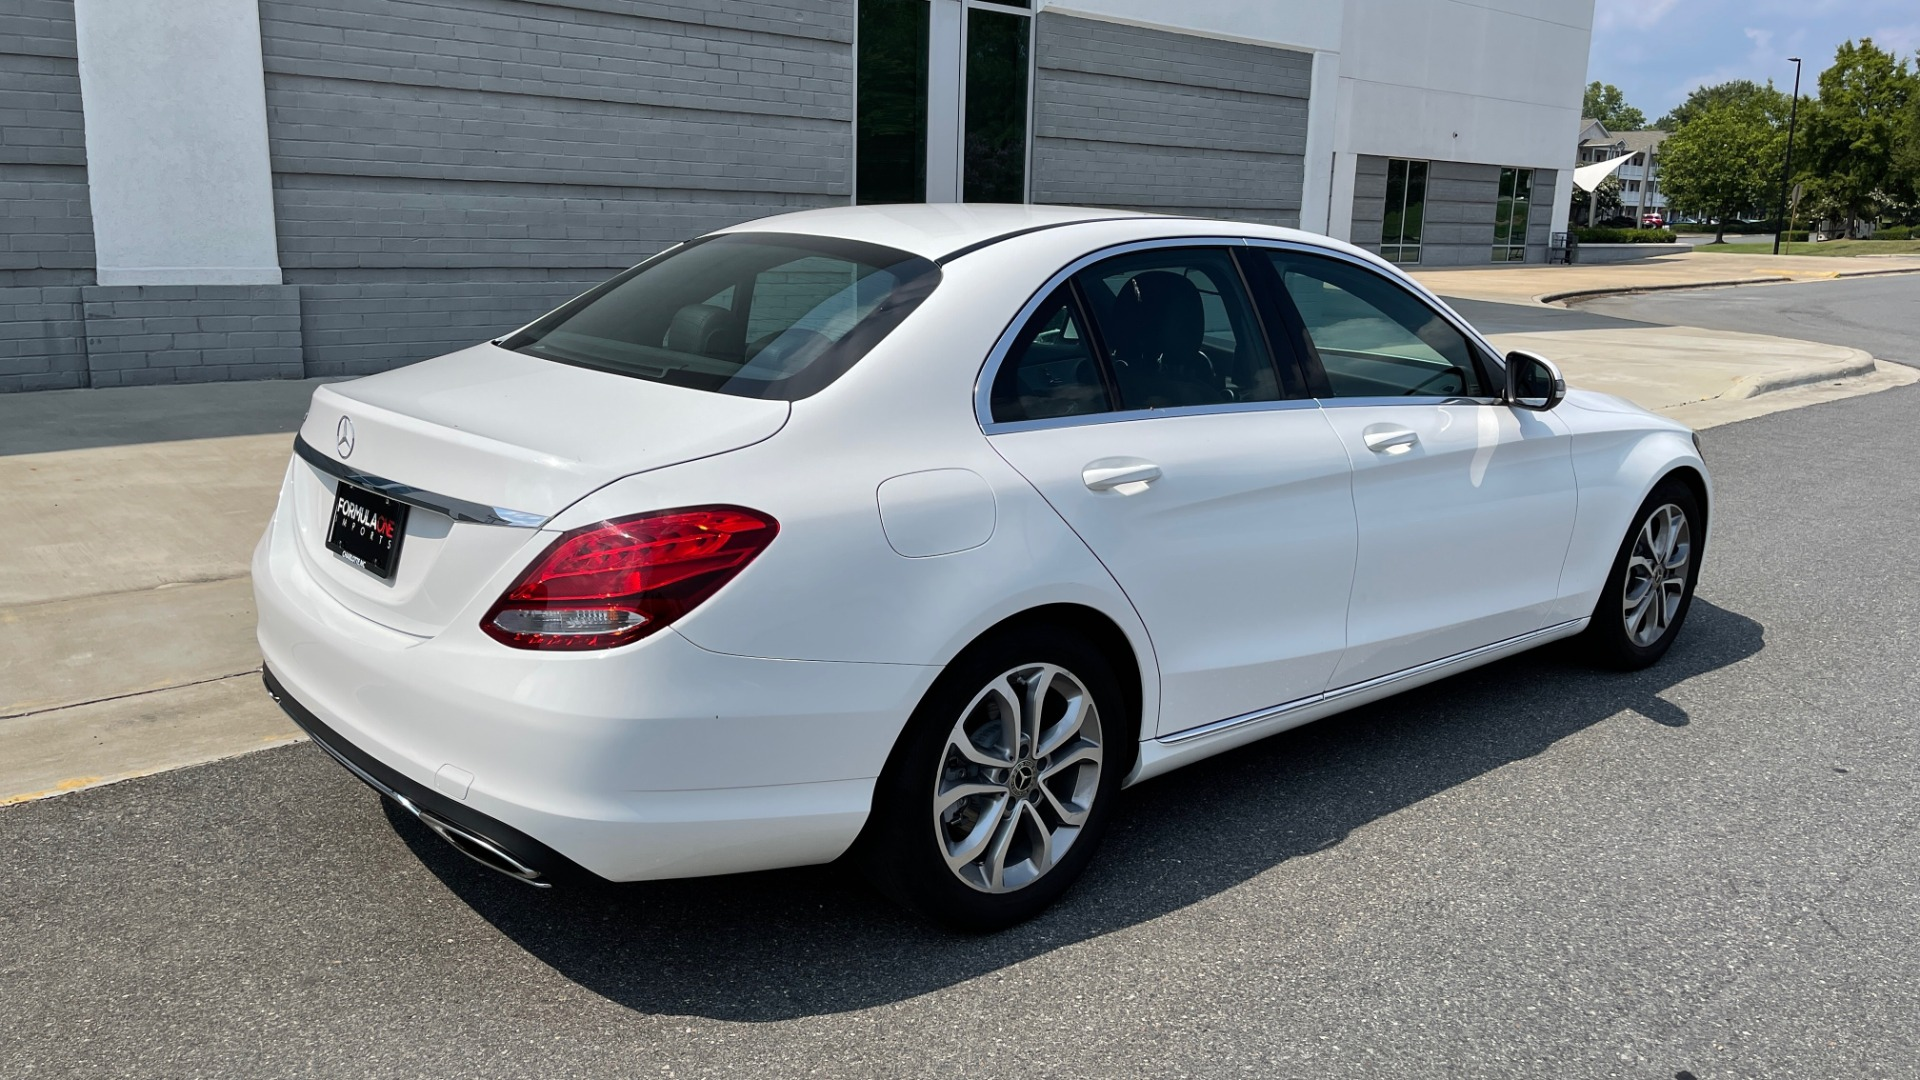 Used 2018 Mercedes-Benz C-CLASS C 300 / 2.0L / RWD / SUNROOF / APPLE~ANDROID / REARVIEW for sale $29,995 at Formula Imports in Charlotte NC 28227 2